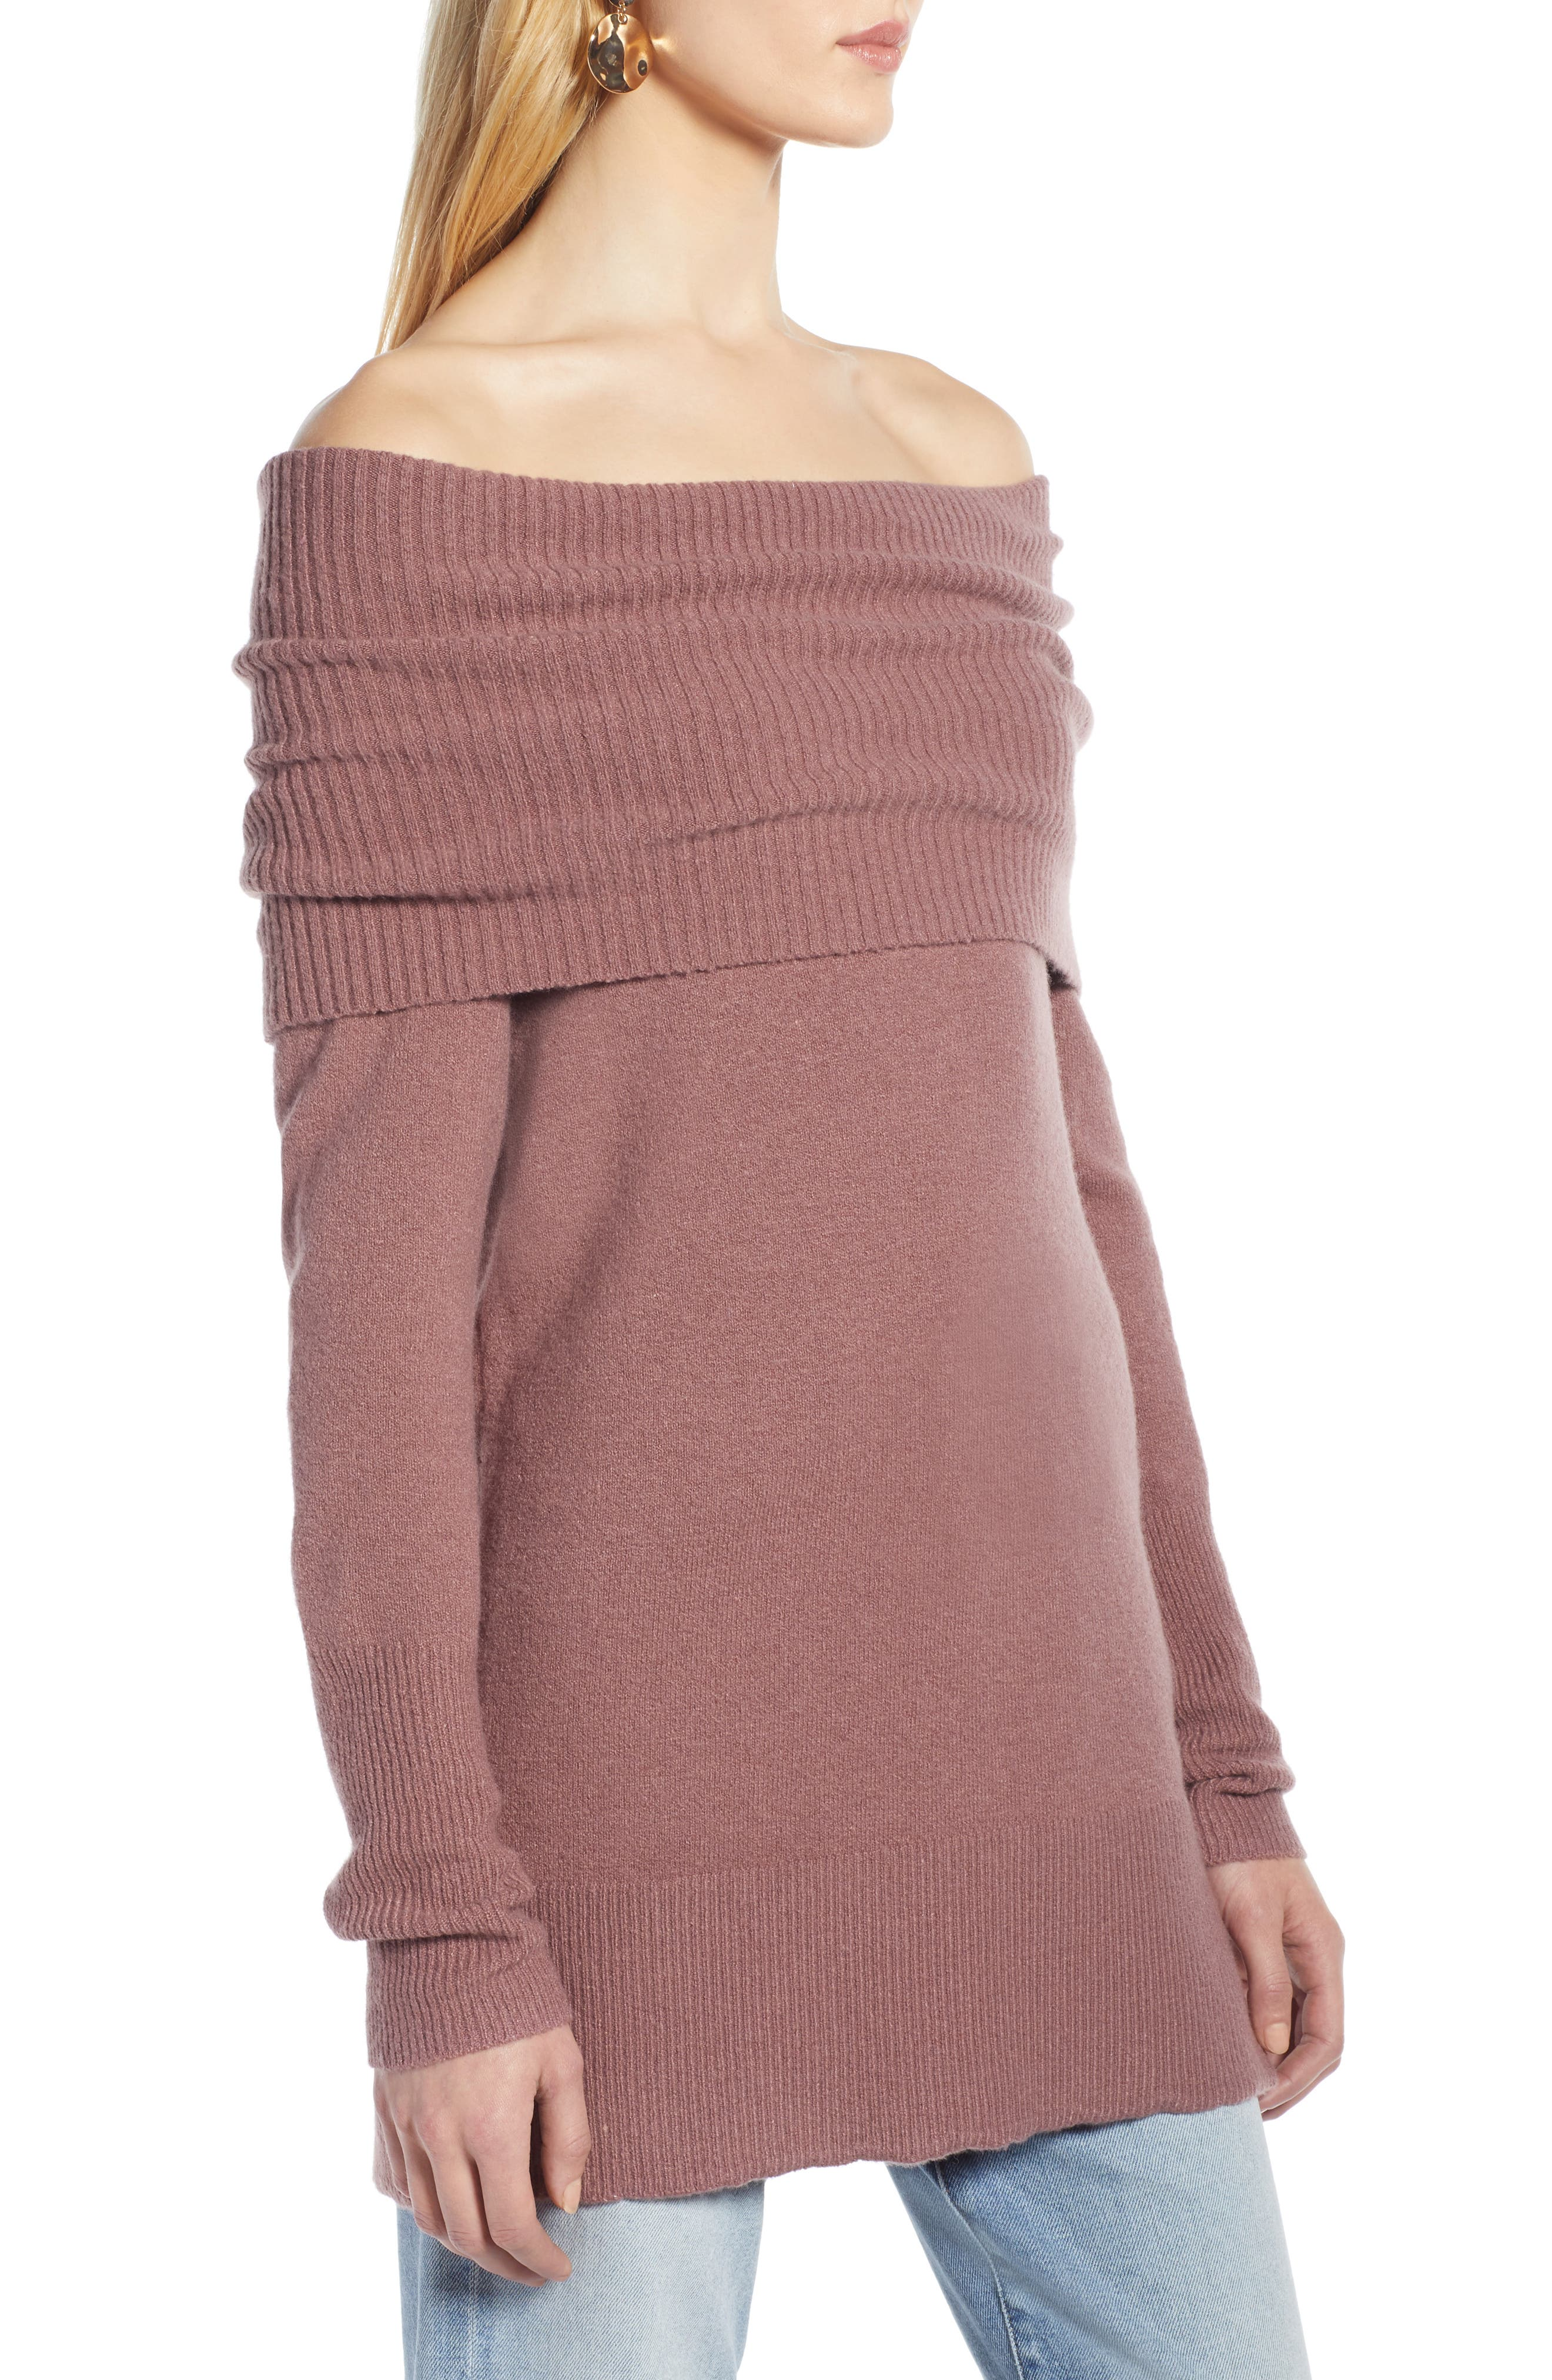 Convertible Neck Sweater,                             Alternate thumbnail 3, color,                             PURPLE TAUPE